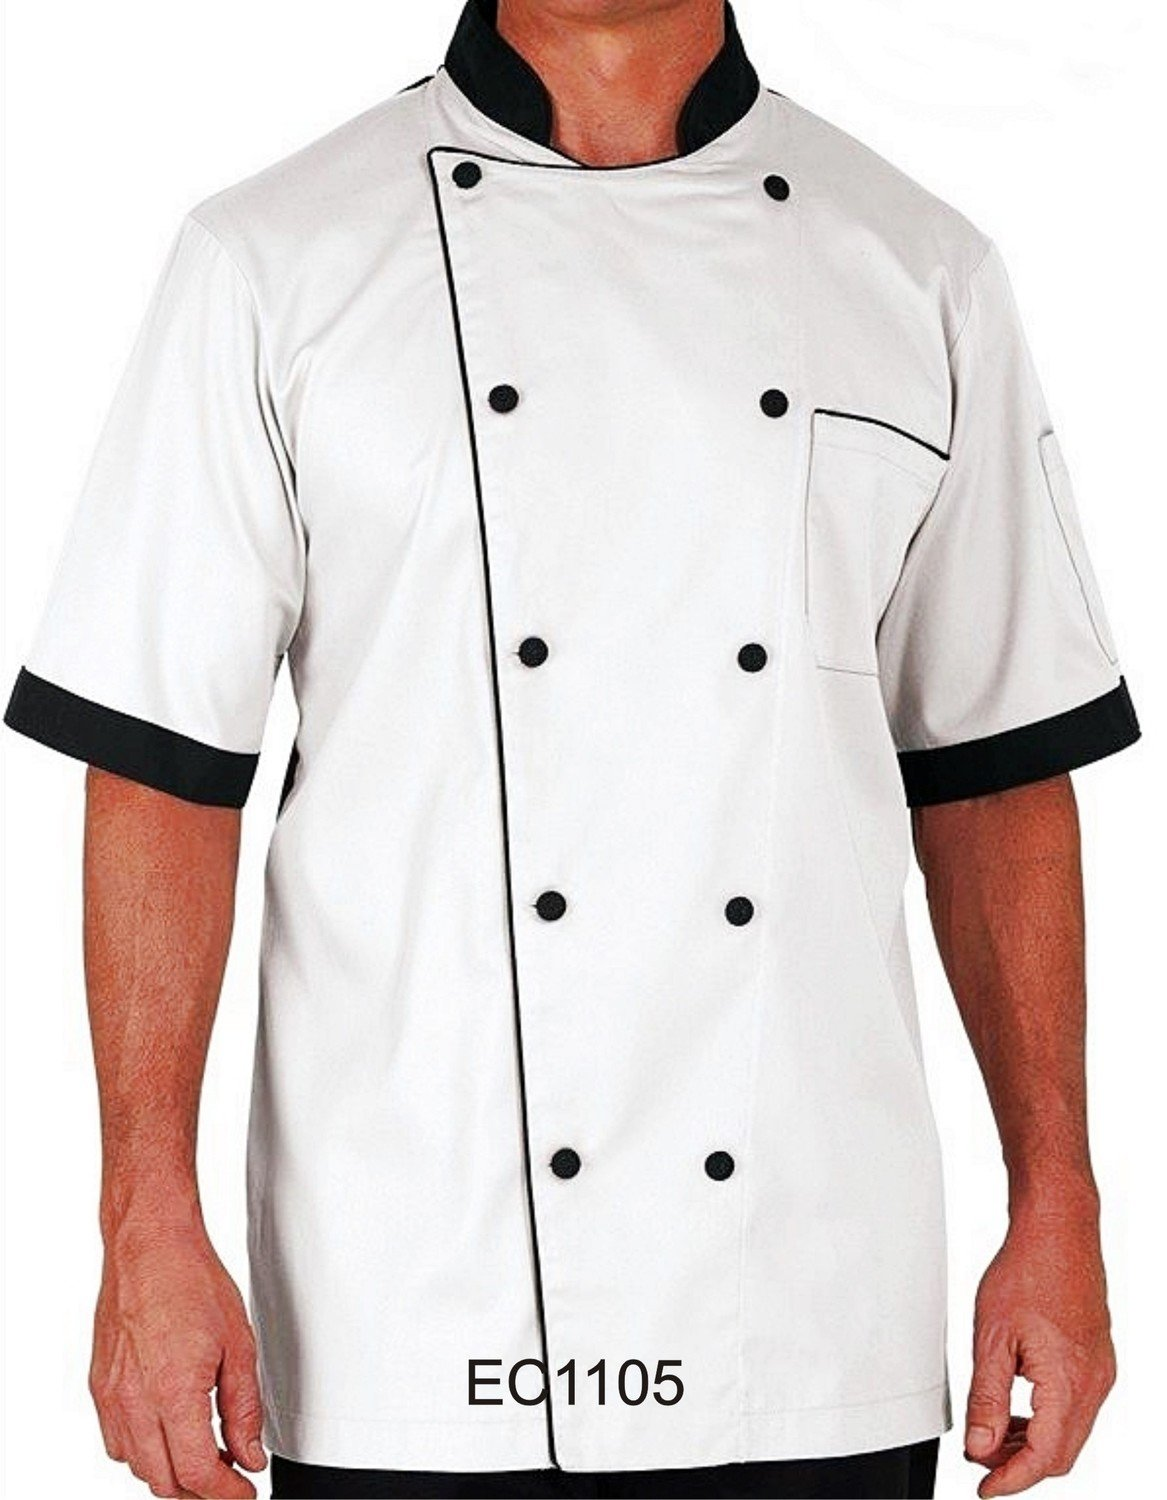 EC1105 EXECUTIVE CHEF COAT